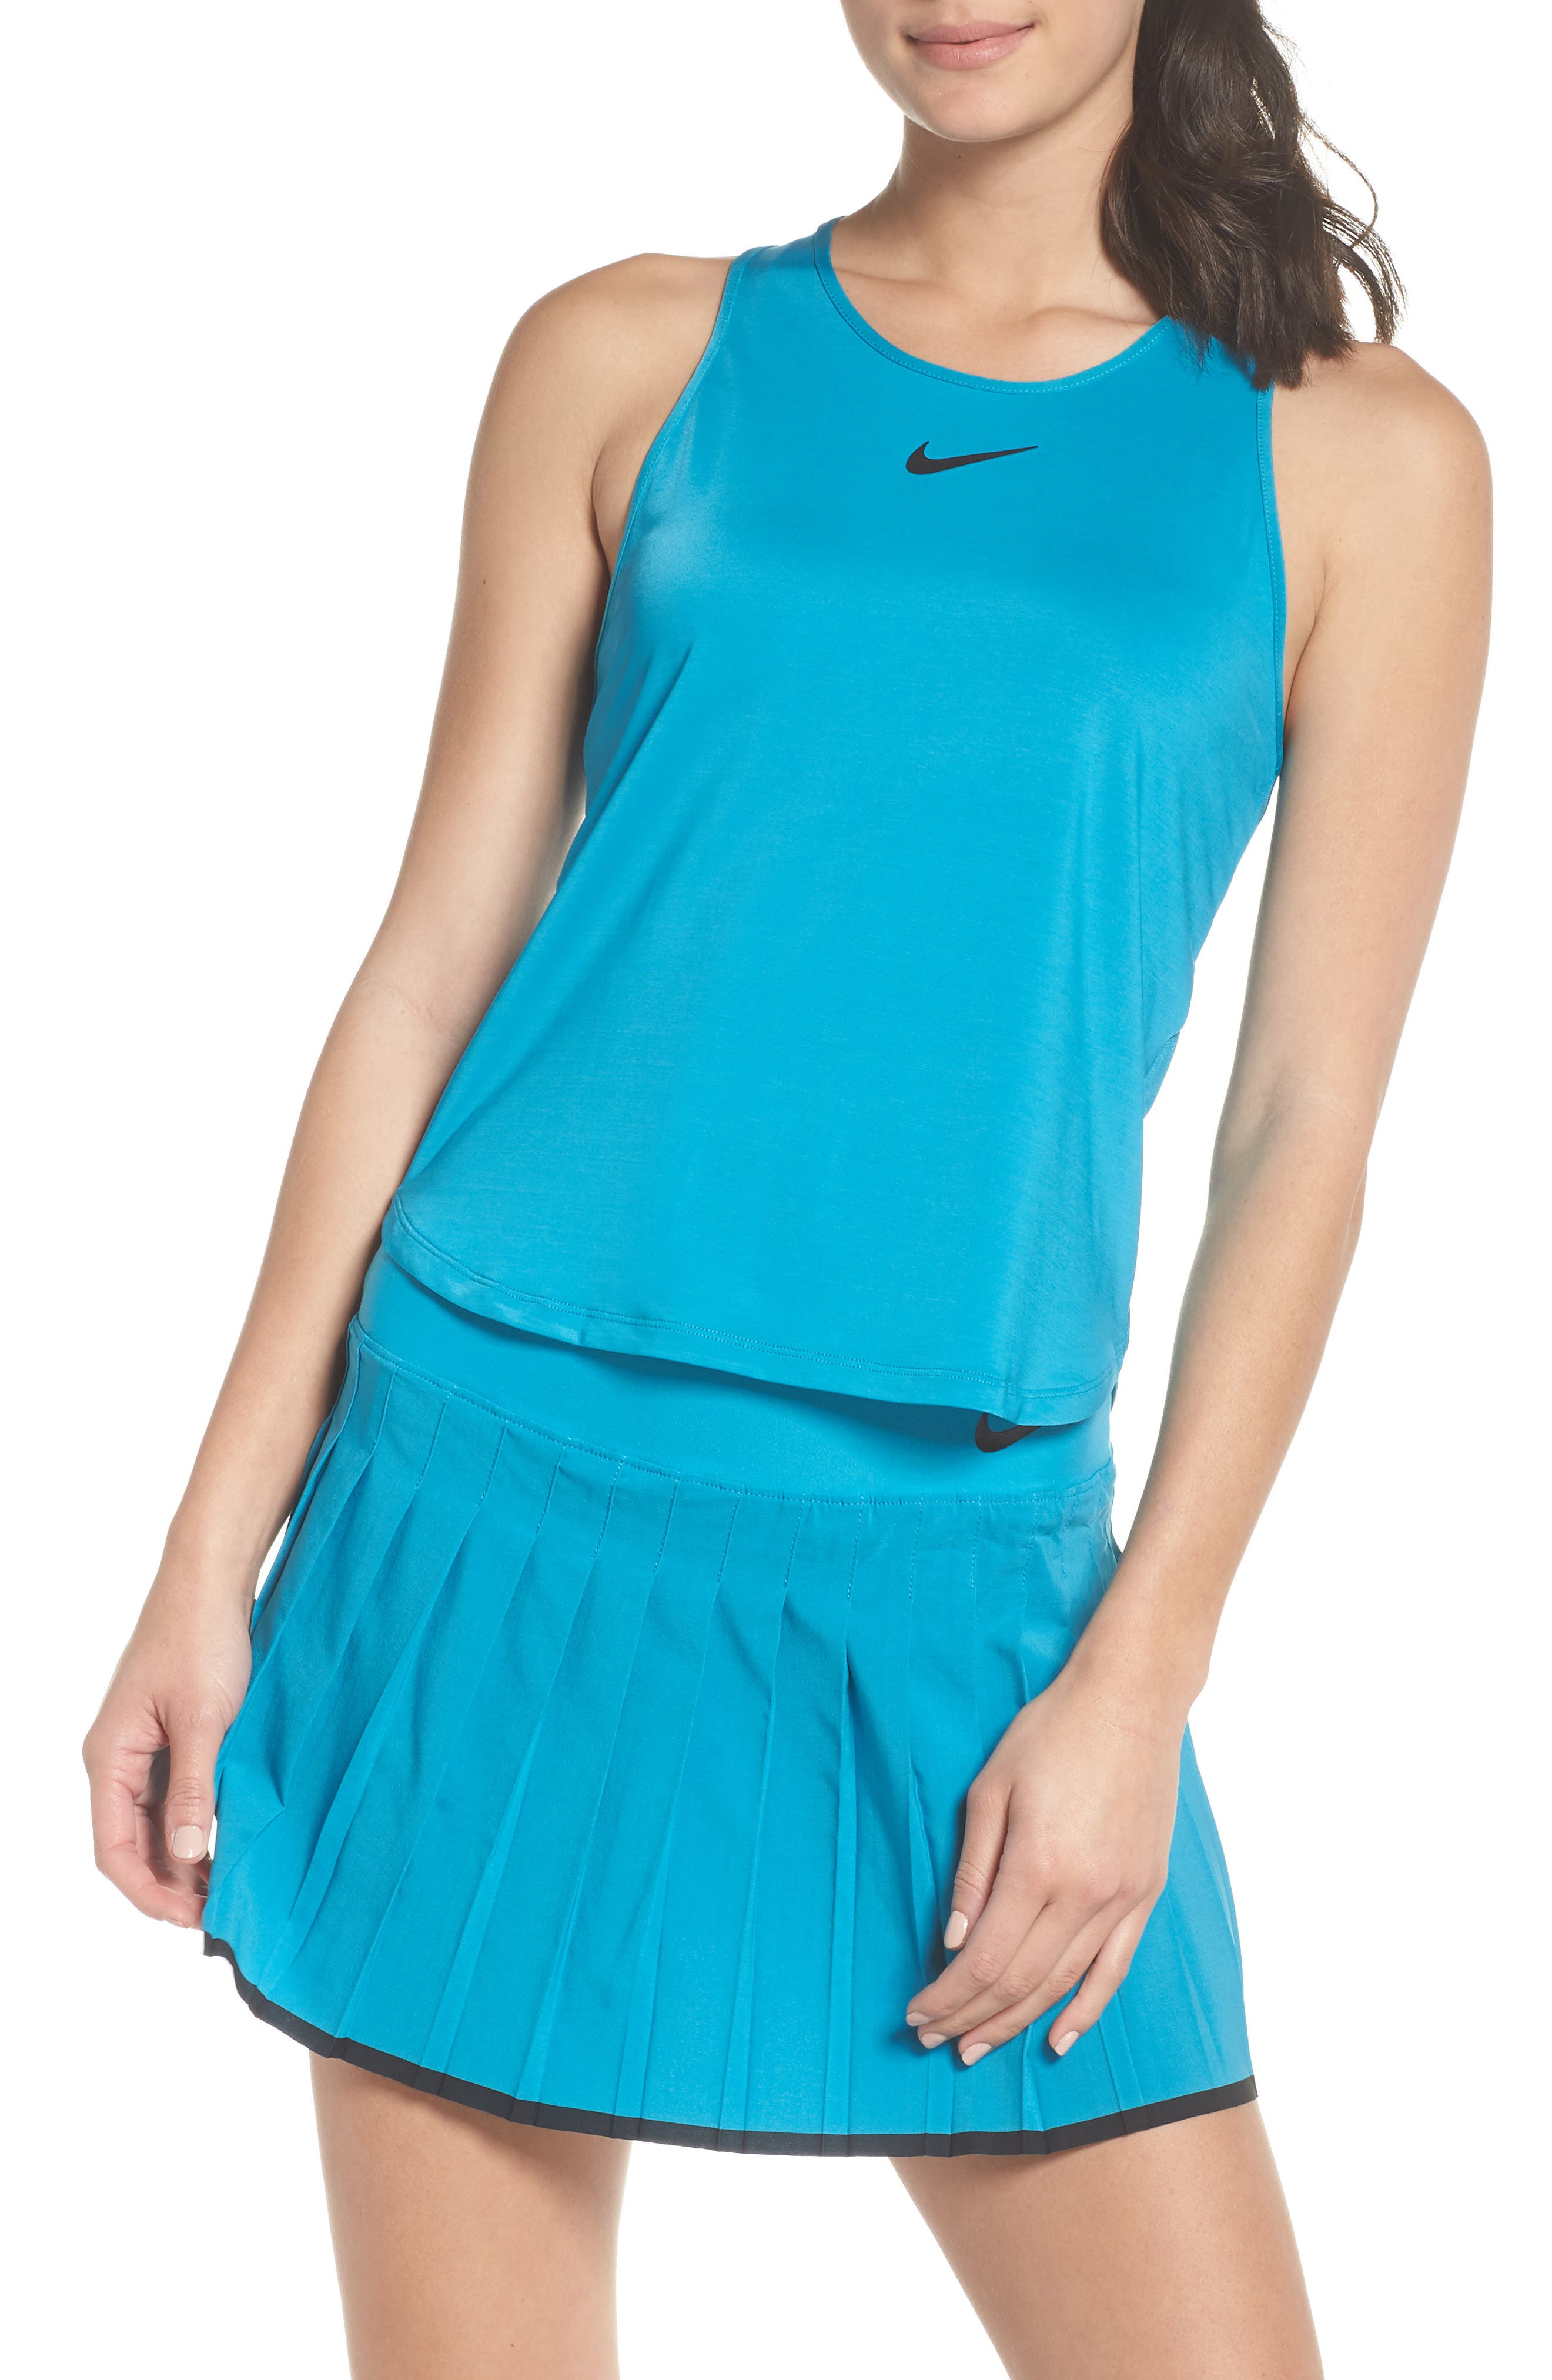 Court Dry Slam Tennis Tank,                         Main,                         color, Neo Turquoise/ Black